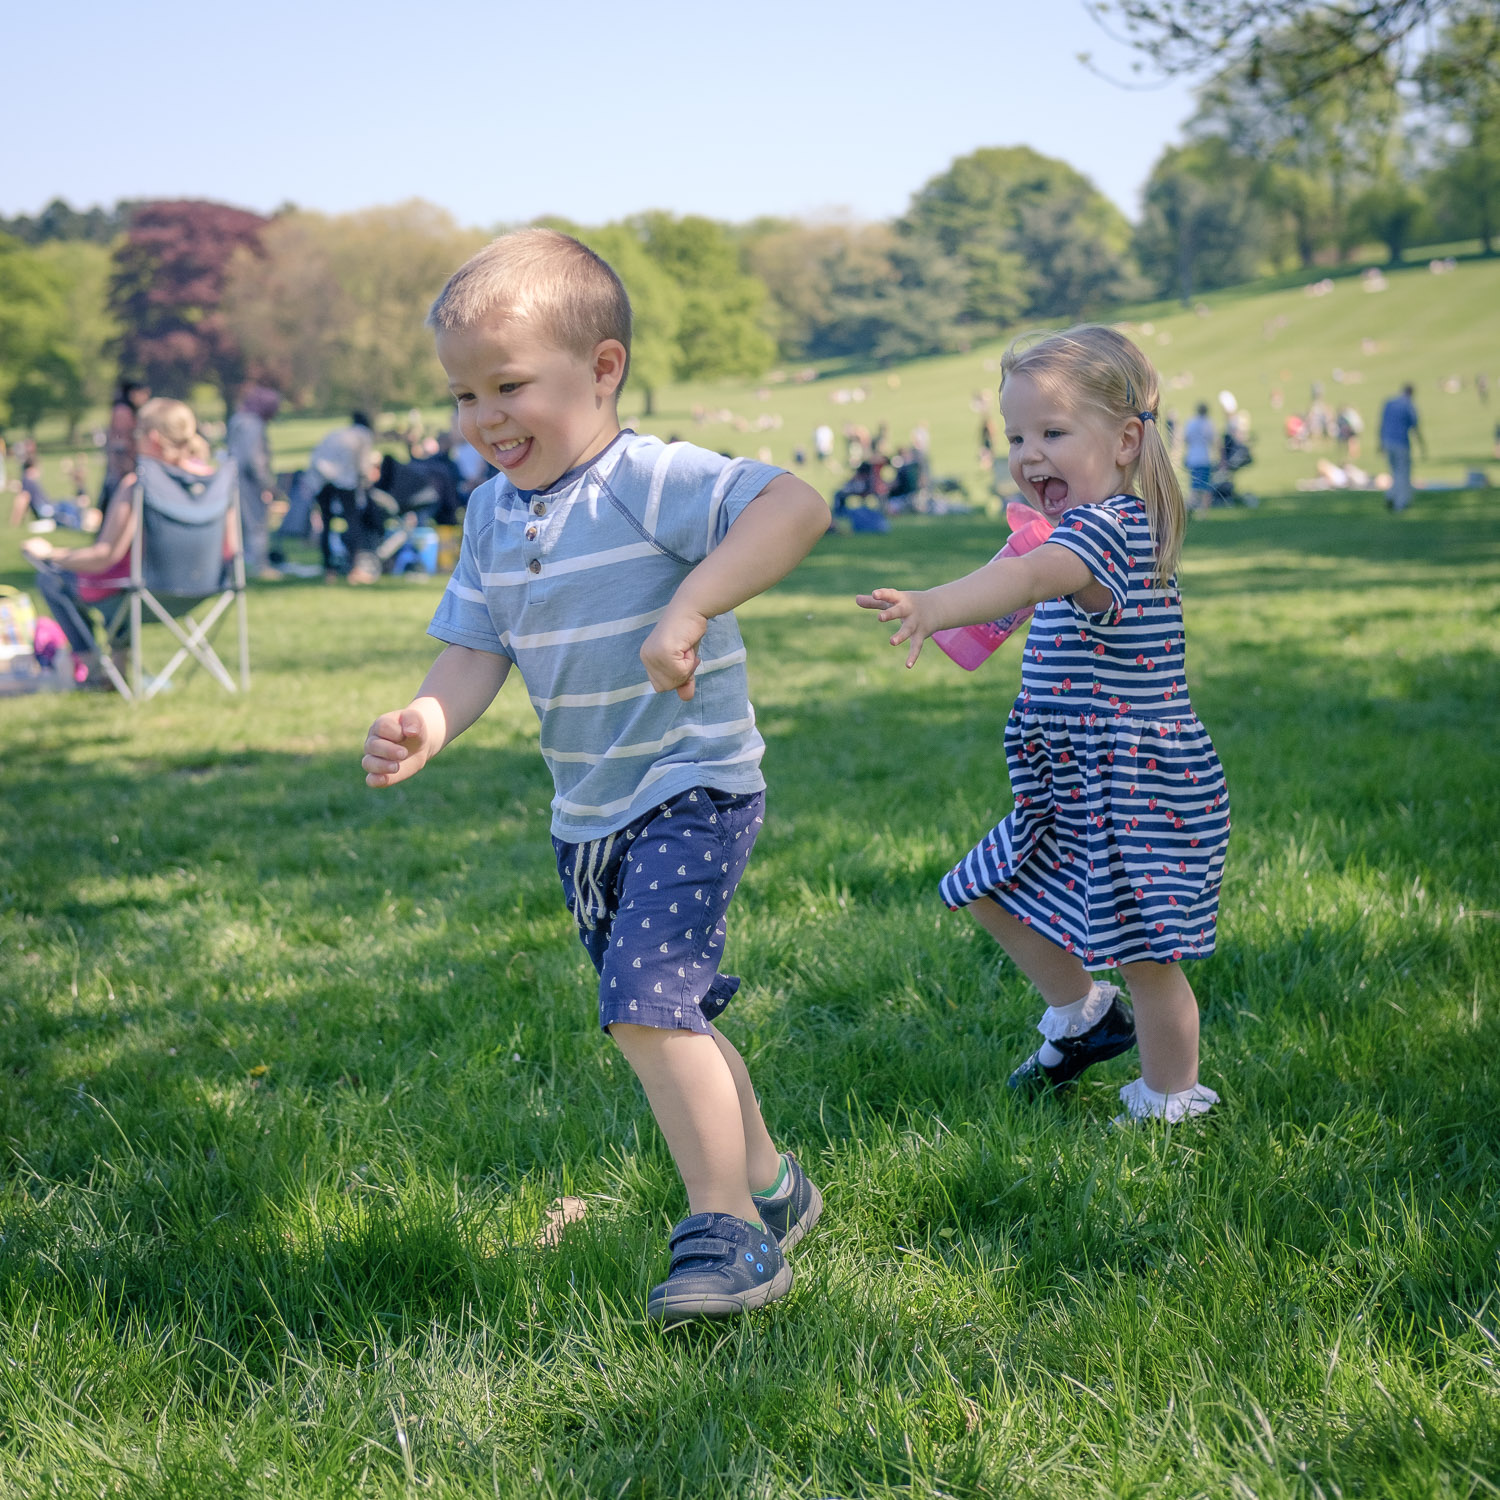 Brother and sister playing chase at Wollaton Park, Nottingham